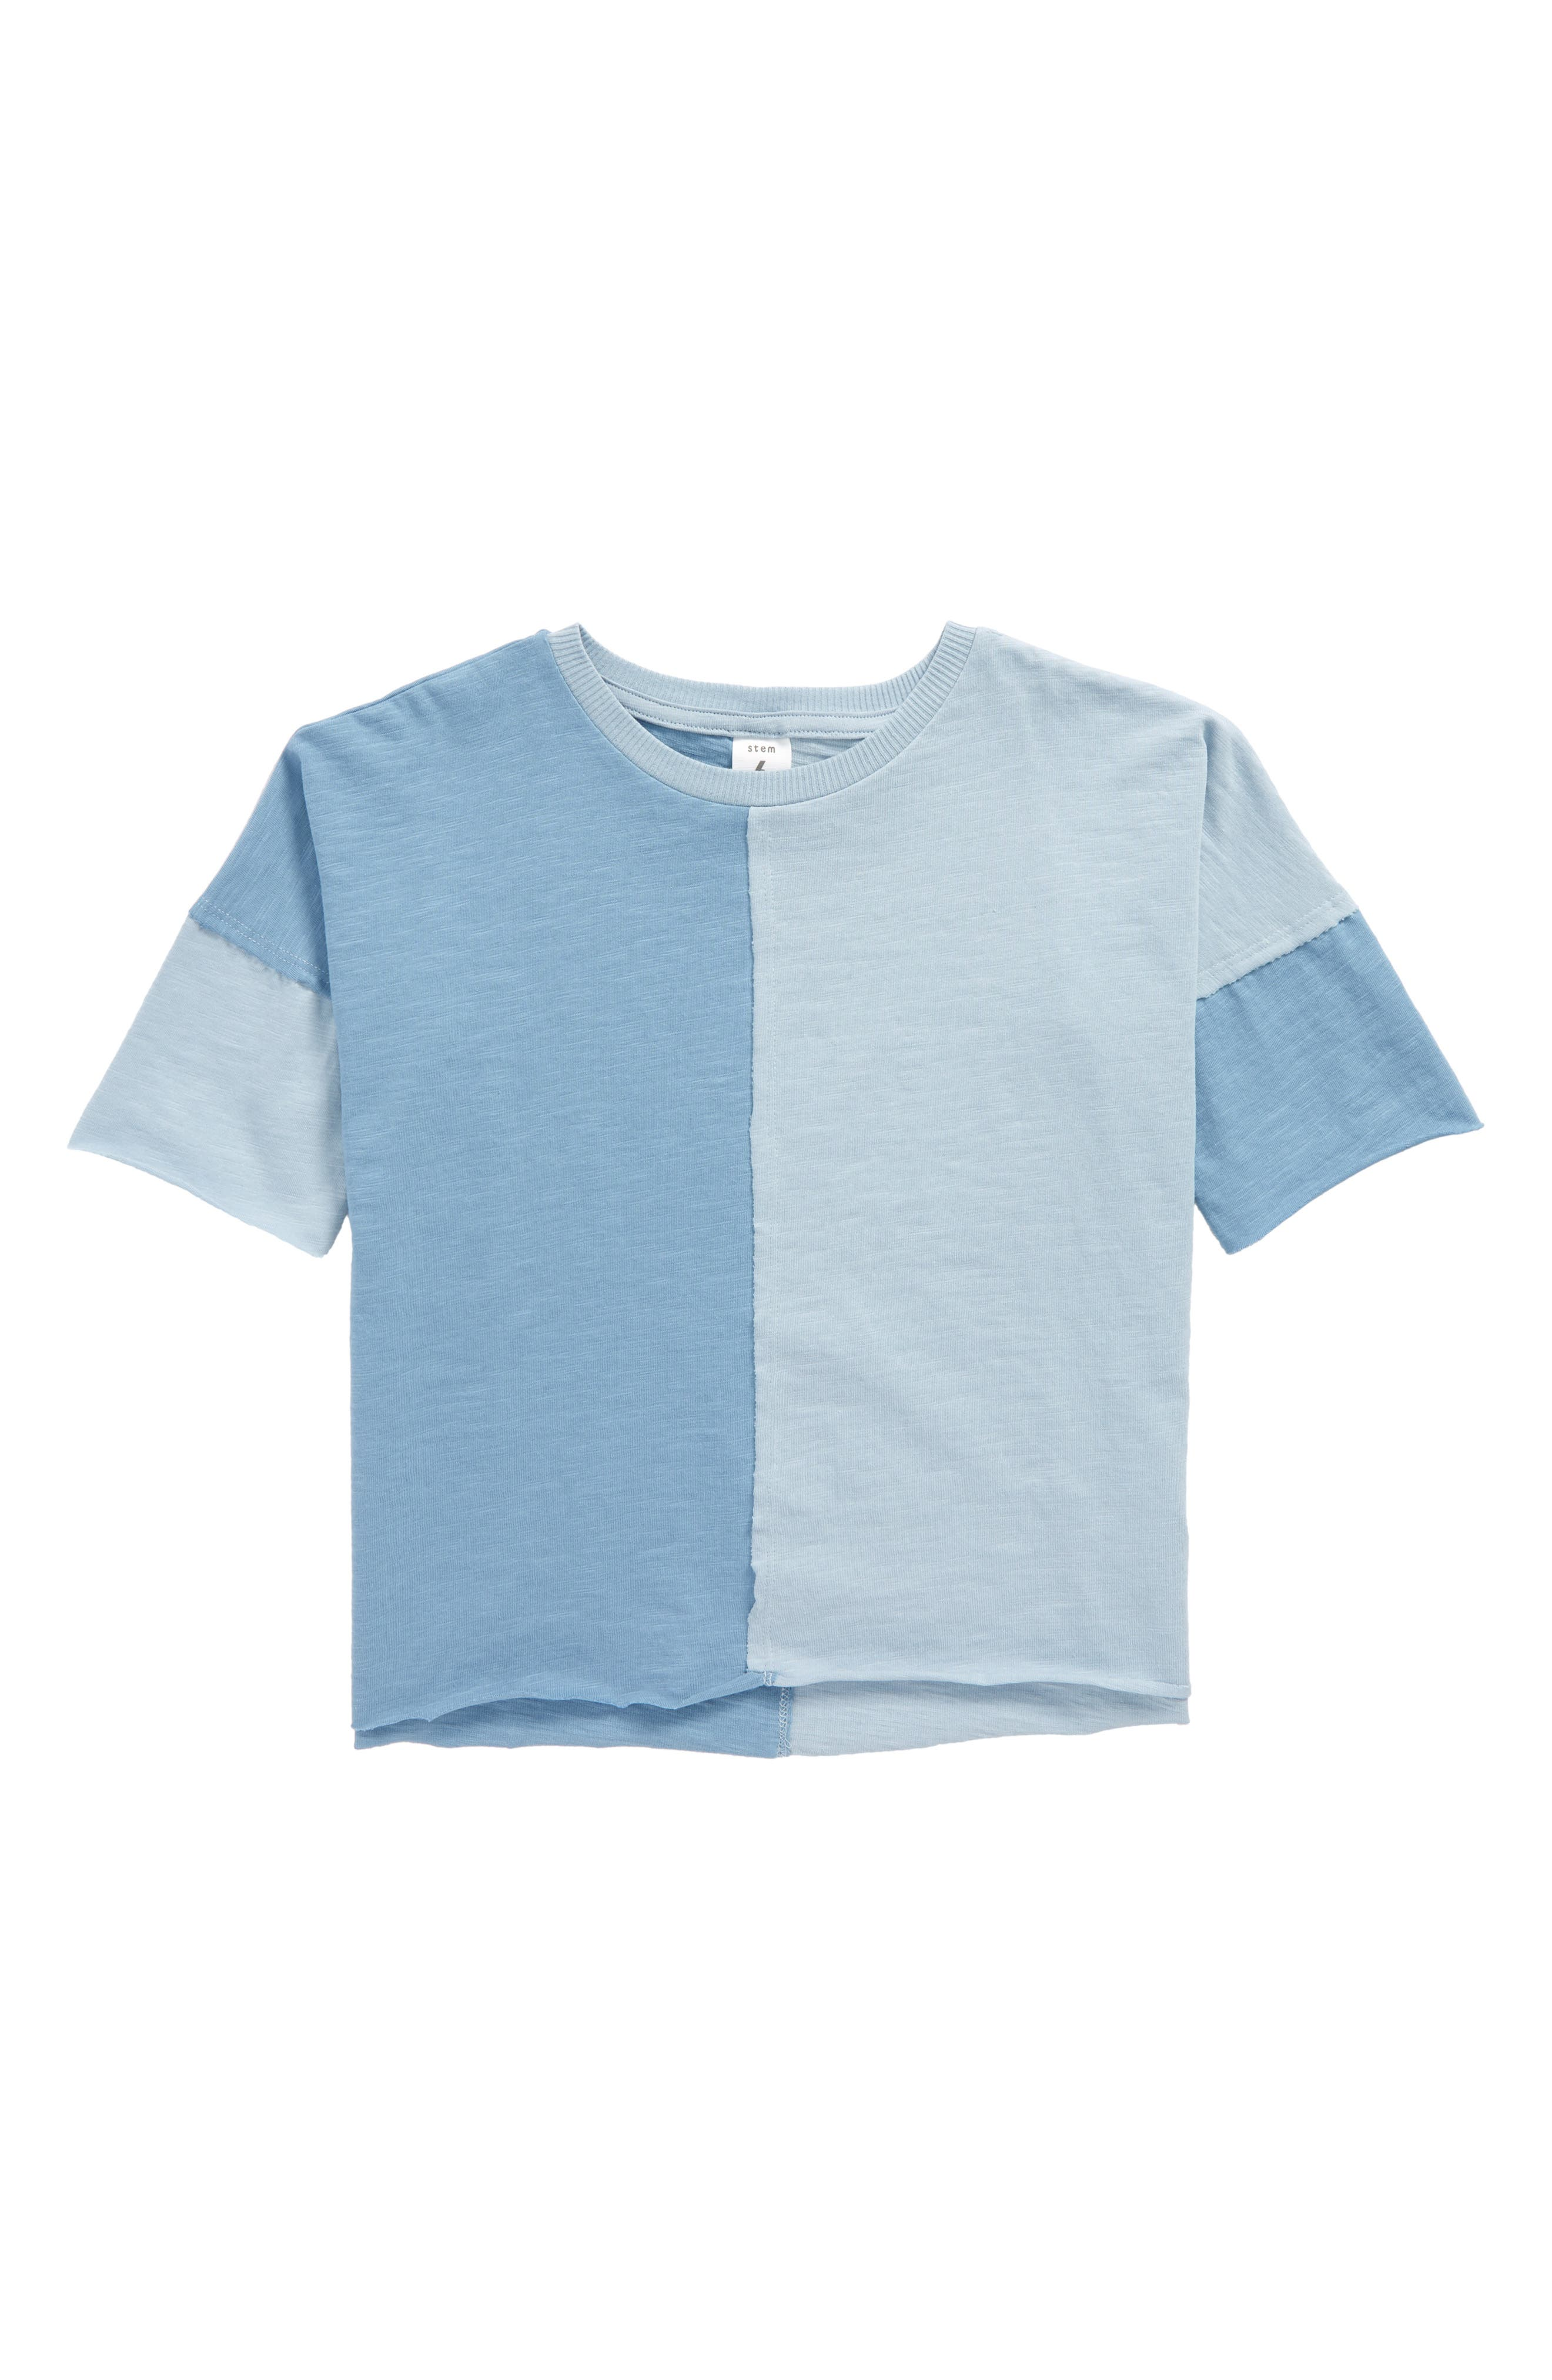 Two-Tone T-Shirt,                         Main,                         color,